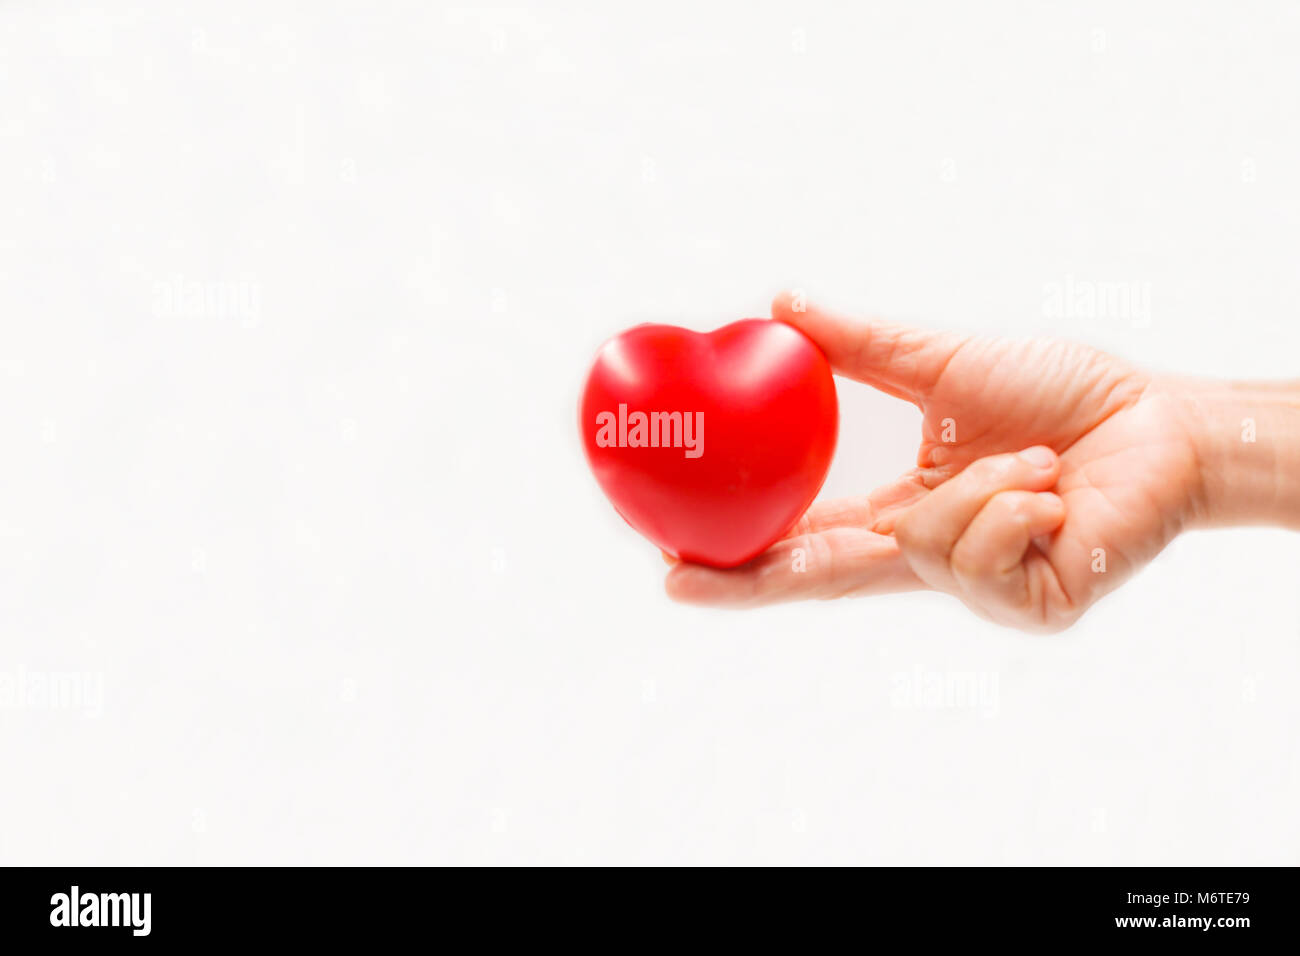 Heart shape in the helping hand on white background. Heart illness, disease protection, proactive checkup, mind - Stock Image